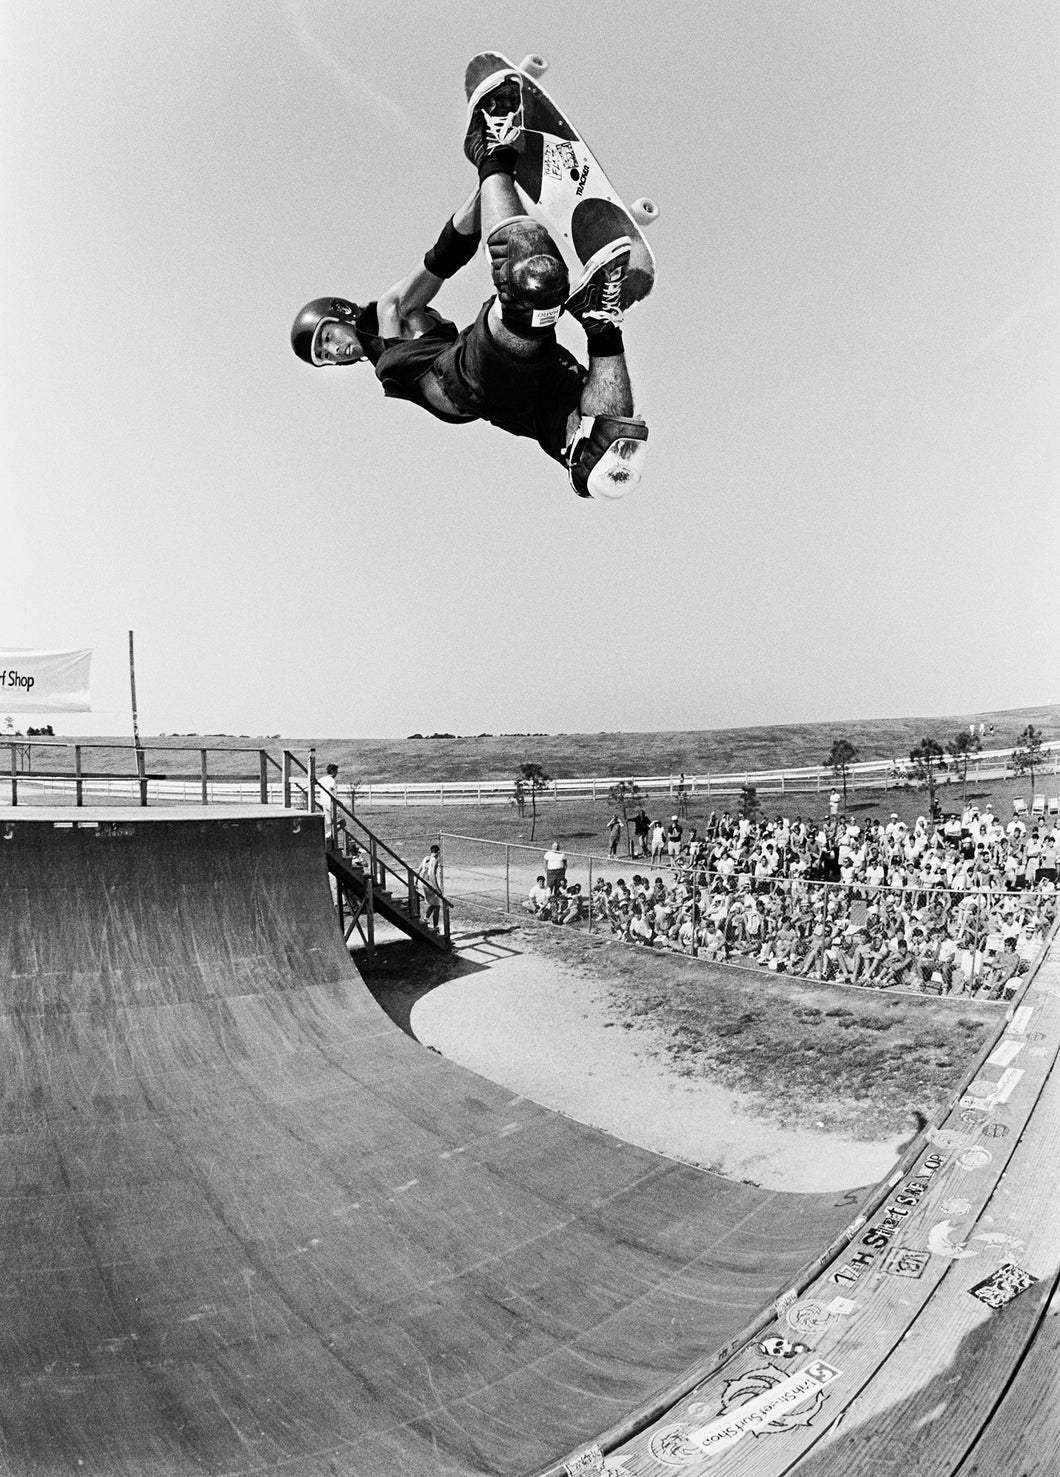 Lester Kasai 18X24 Virginia Beach Skateboarding Photograph